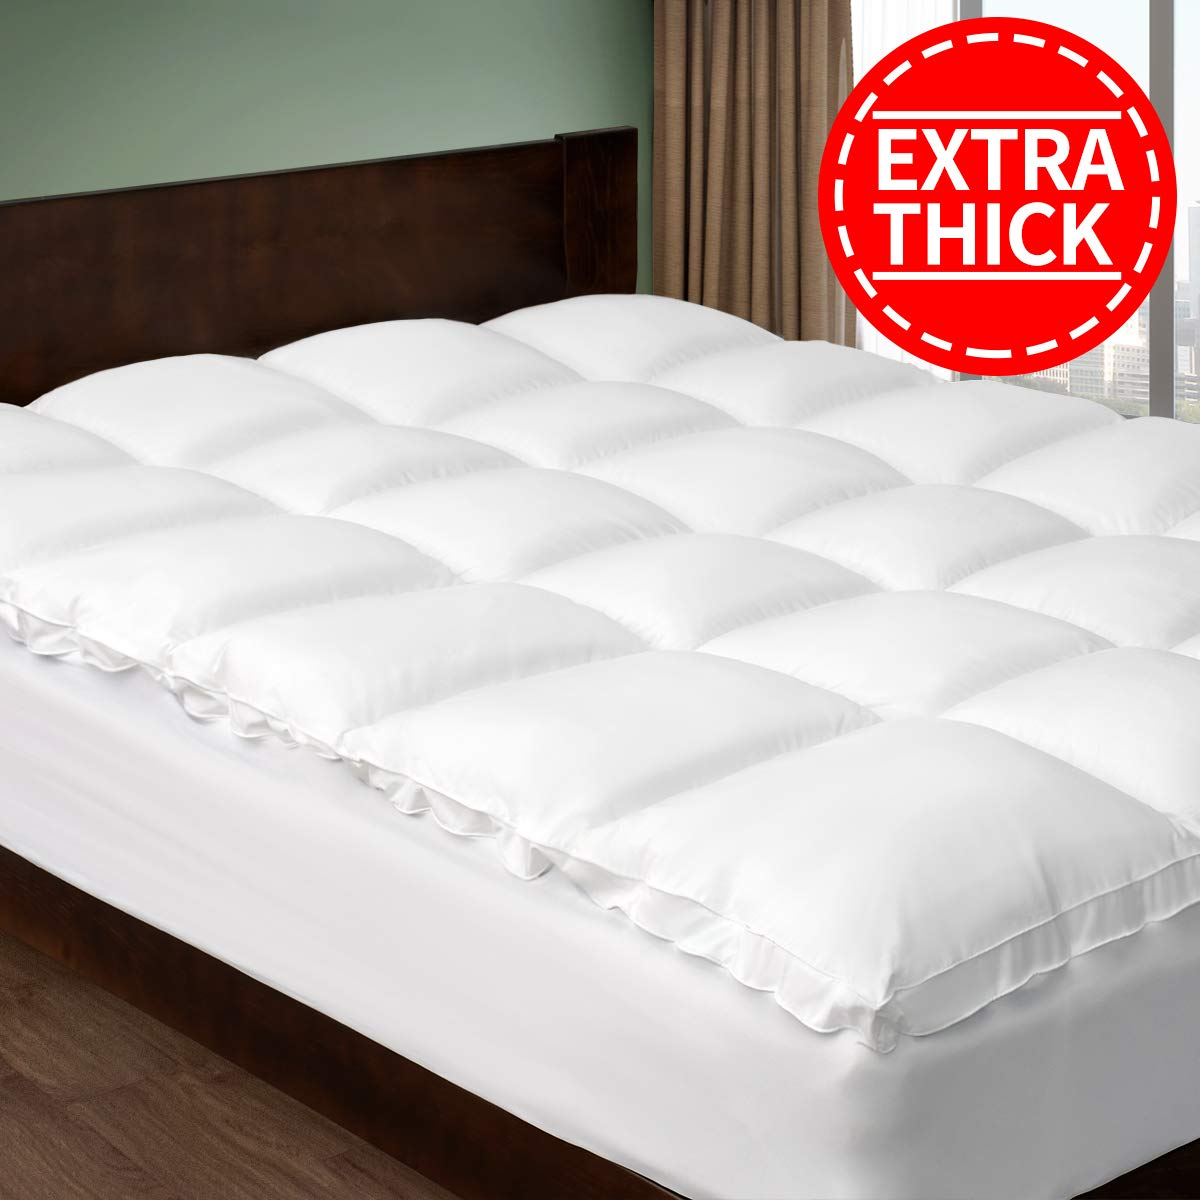 CHOKIT Extra Thick Cal King Mattress Topper, Cooling Cotton Mattress Paover, 400 TC Pillow Top Construction (8-21Inch Deep Pocked Ct),2 Inches Thick Breathable Snow White, California King